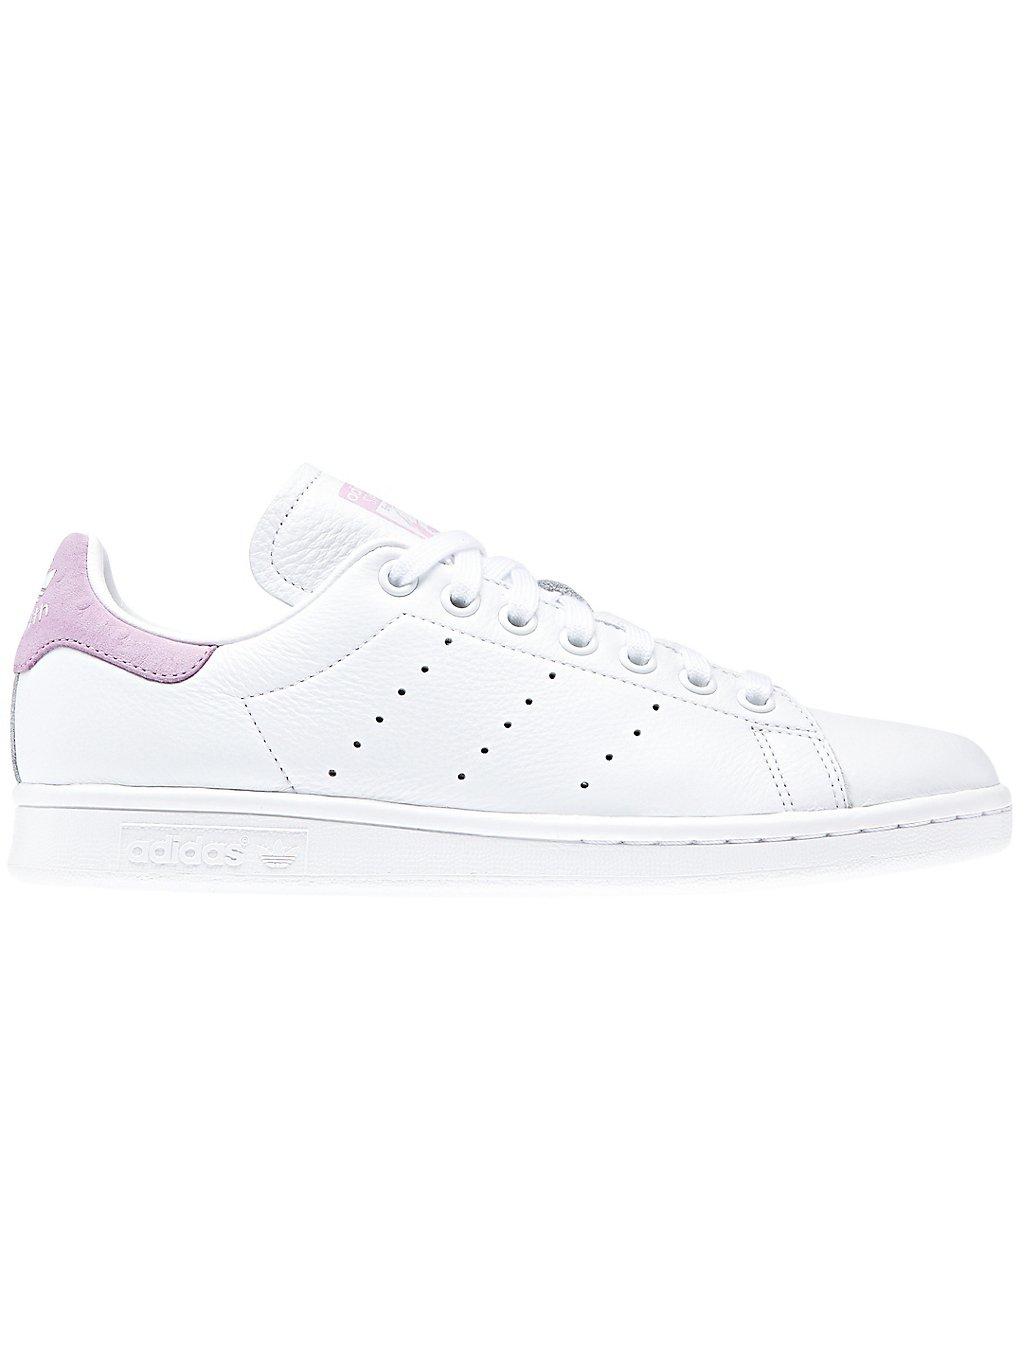 Image of adidas Originals Stan Smith W Sneakers Women